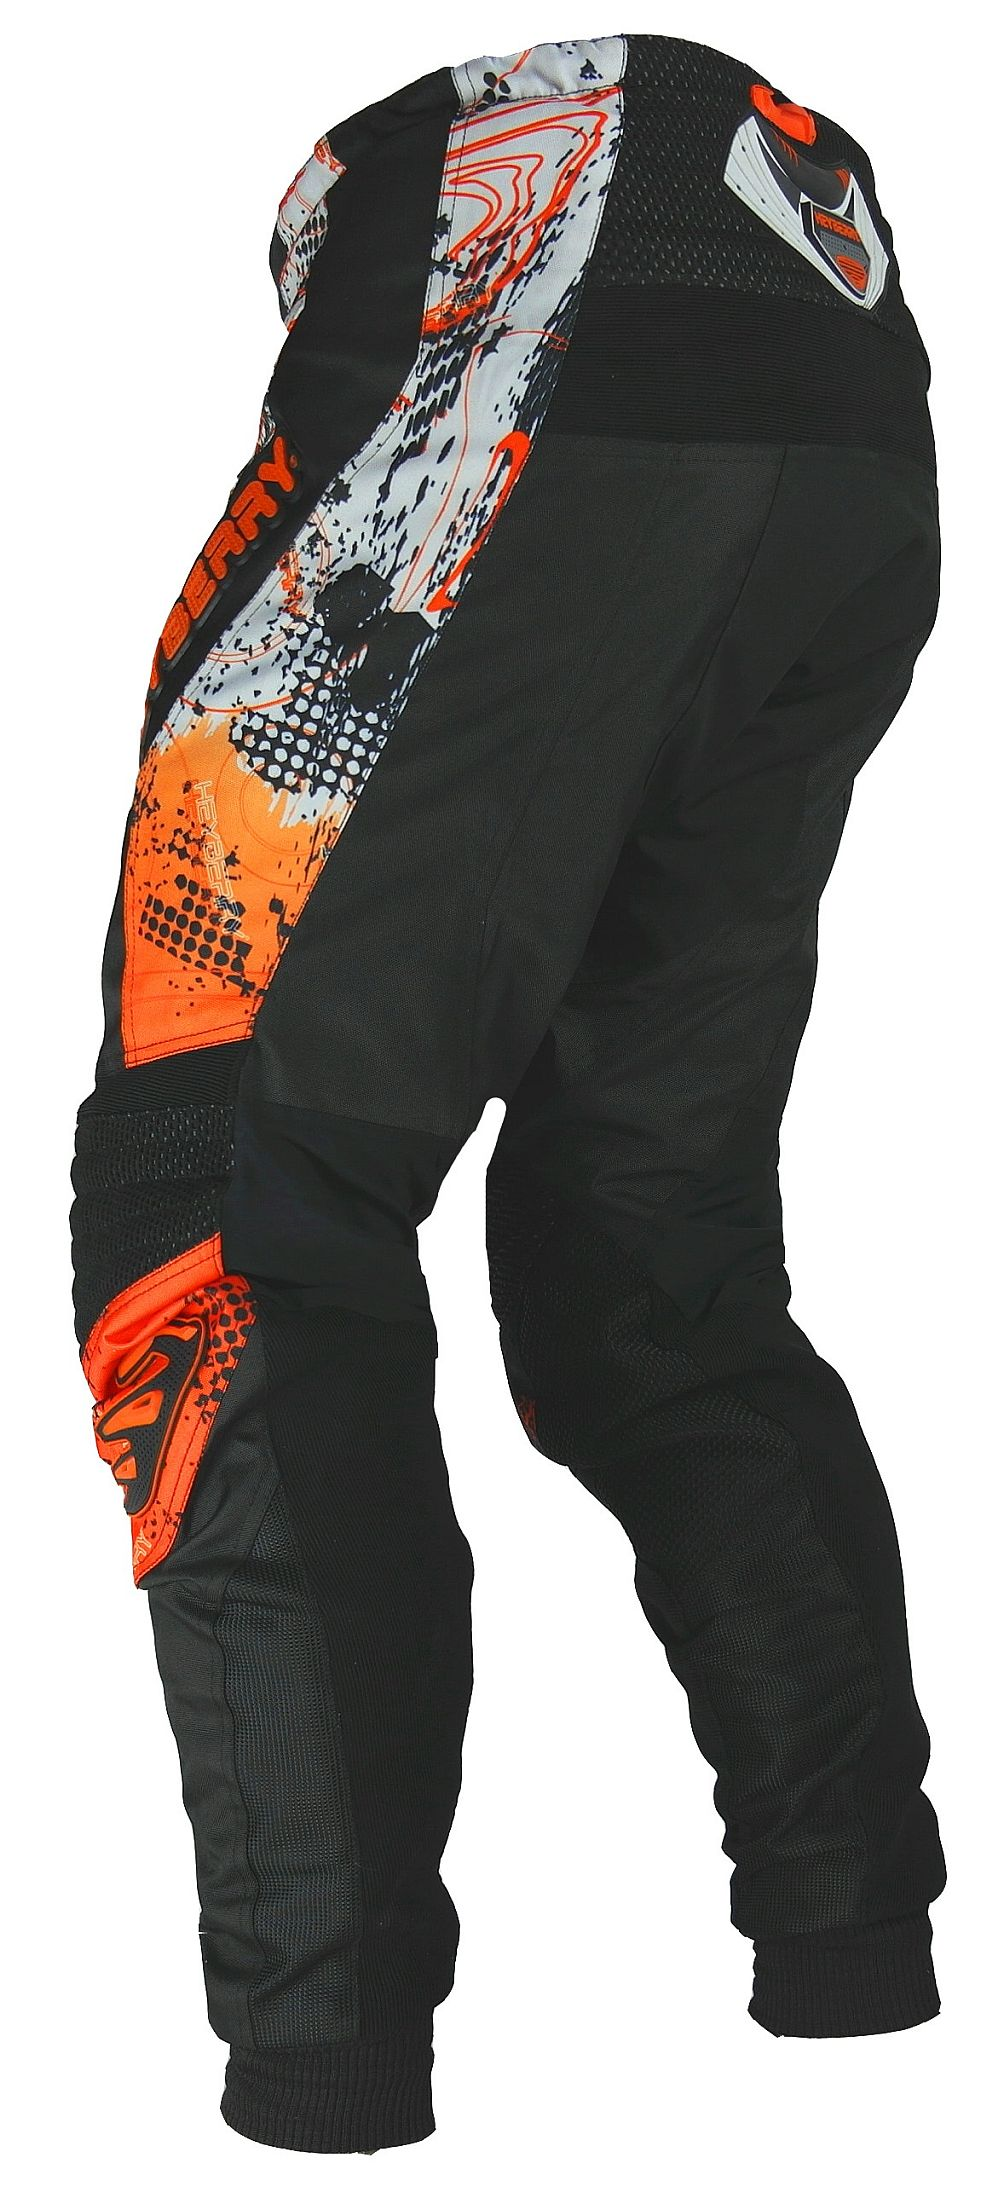 Heyberry Motocross Enduro Quad Hose schwarz orange Gr. M - XXL